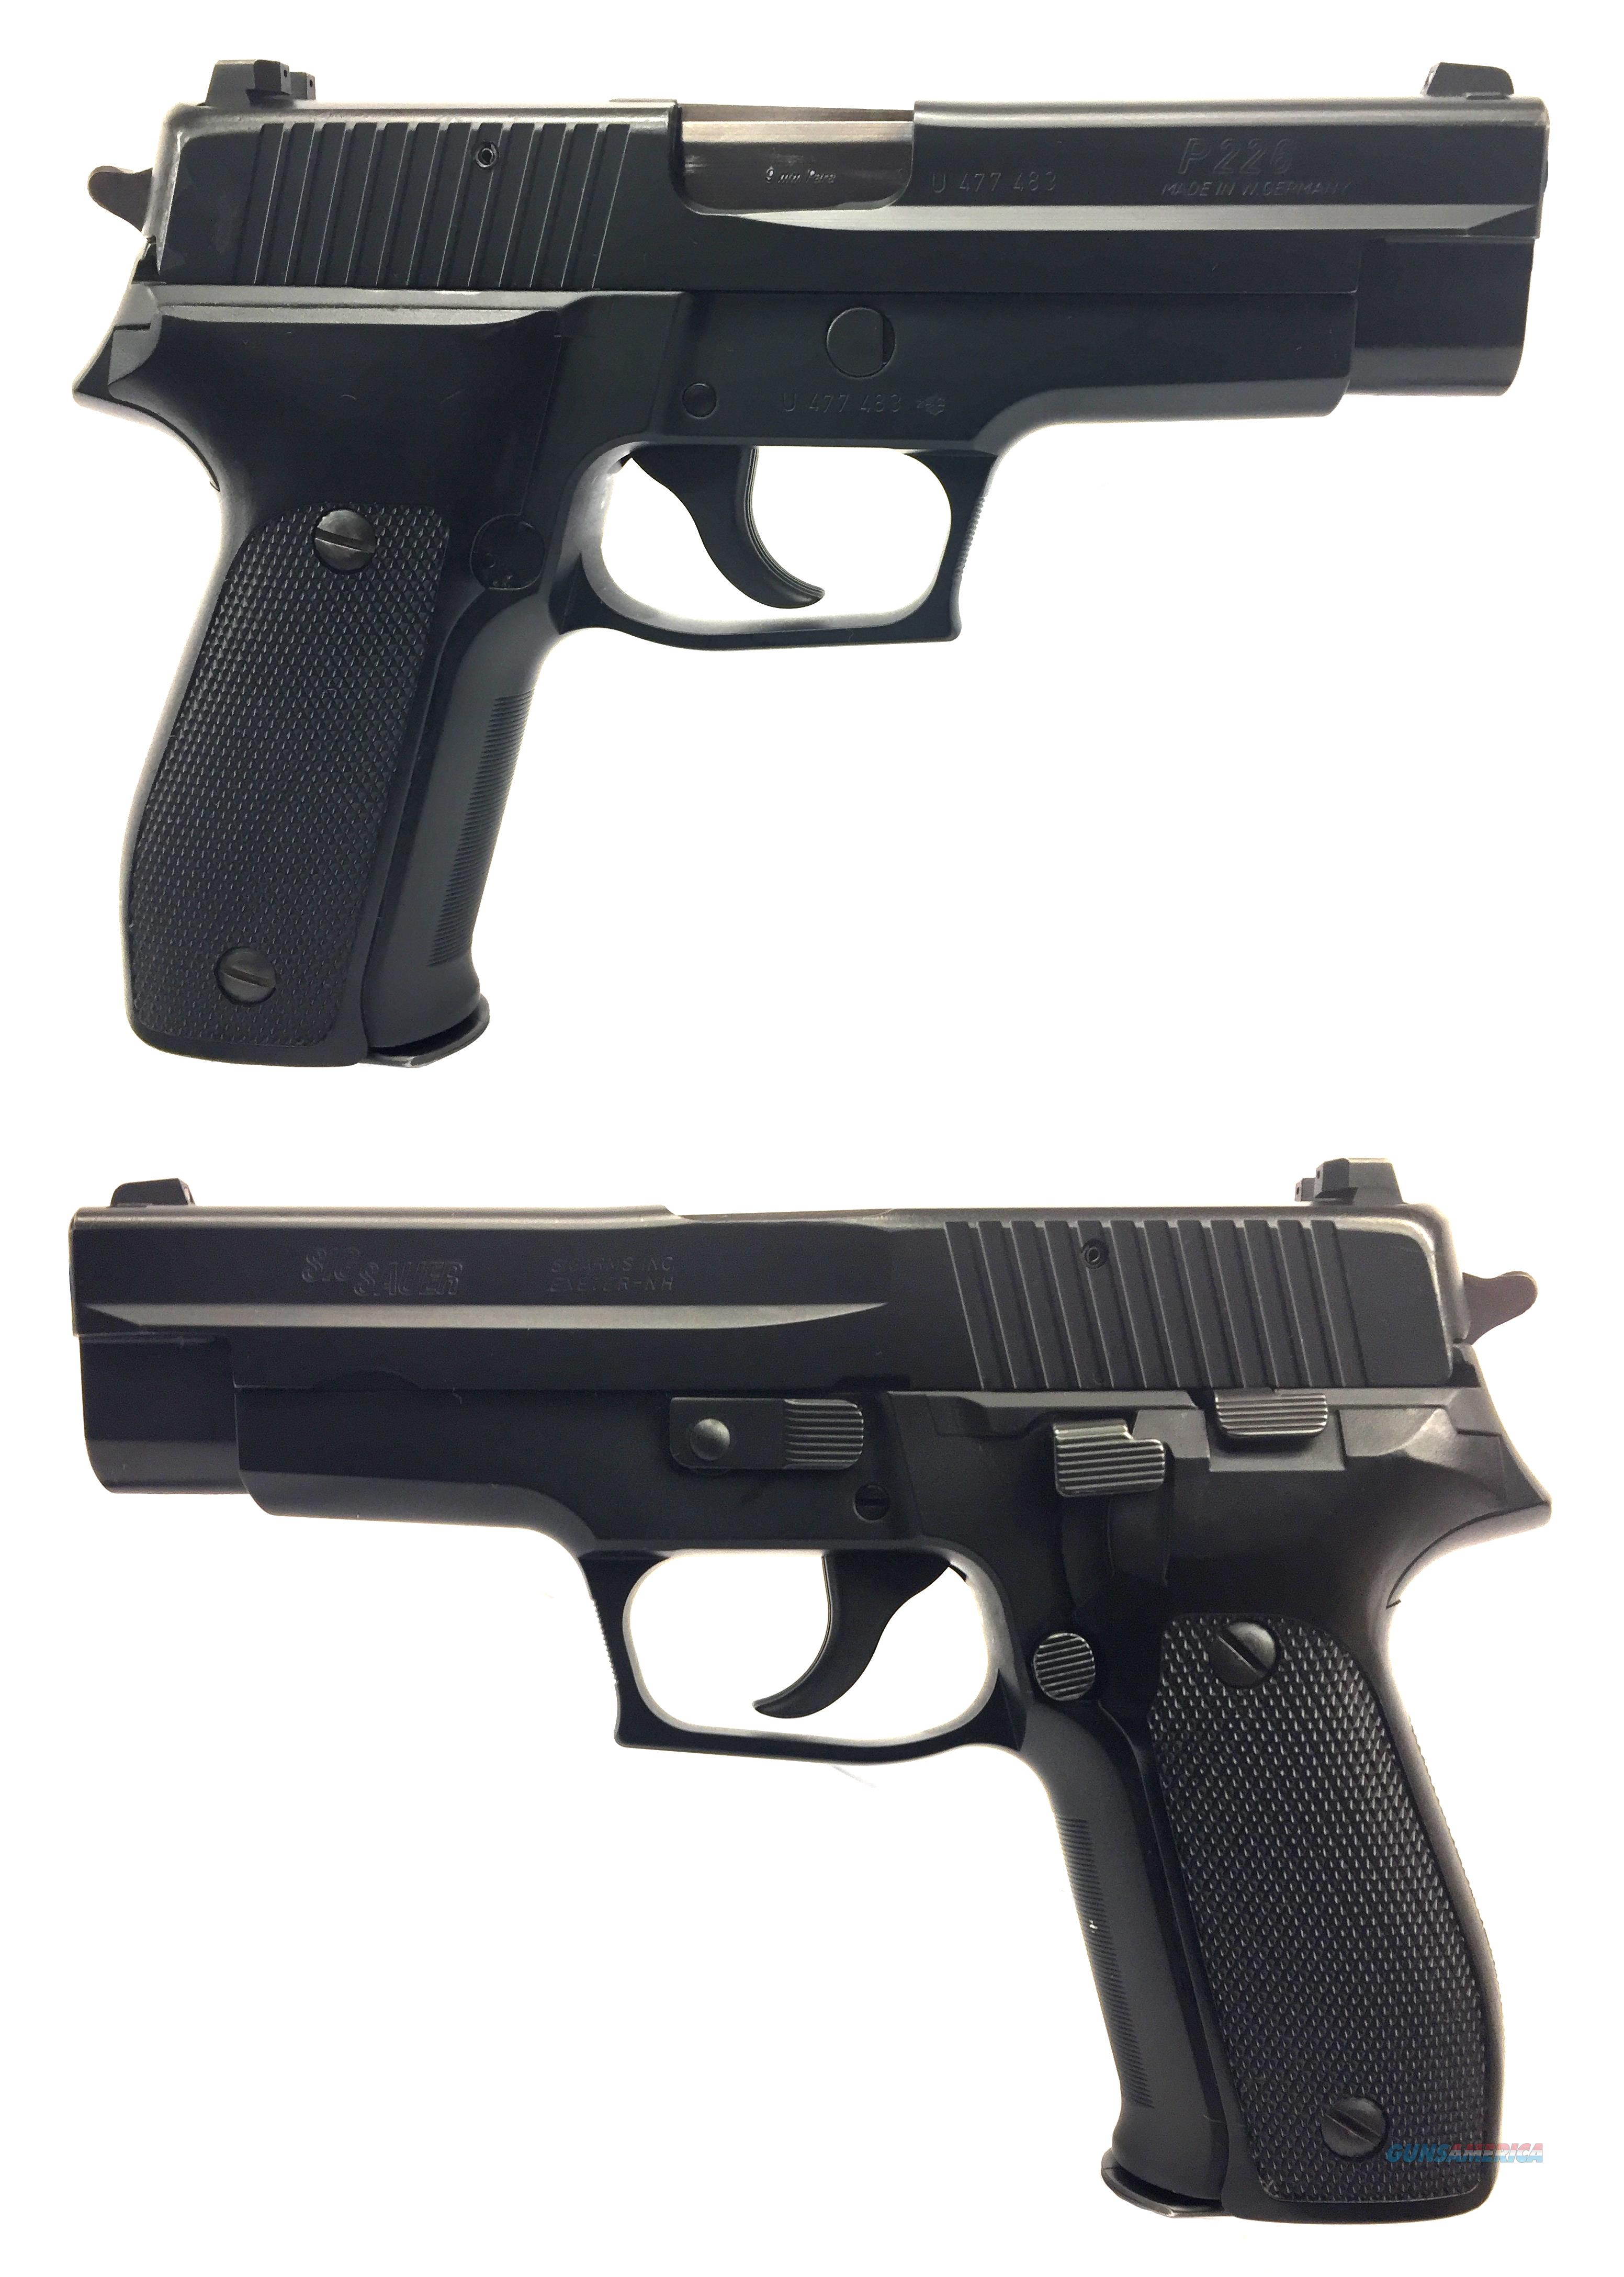 Sig Sauer P226 9mm Semi-Auto Pistol With West Germany Stamp  Guns > Pistols > Sig - Sauer/Sigarms Pistols > P226